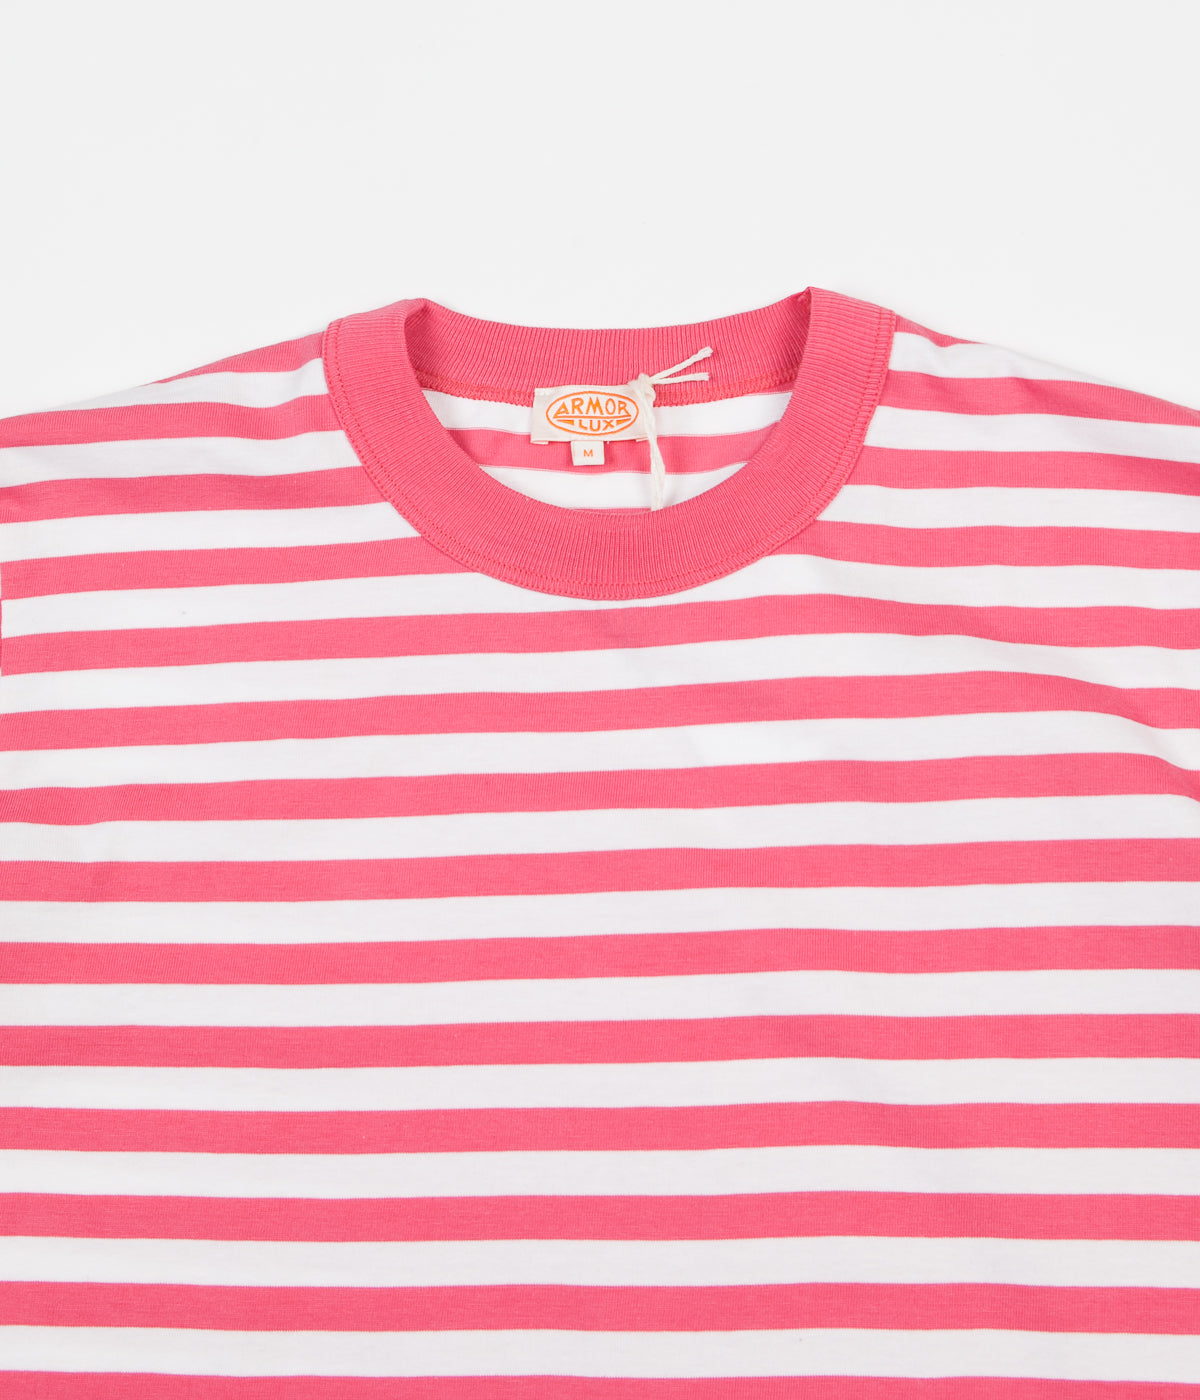 Armor Lux Heritage Striped Heavy Cotton T-Shirt - New Pink / White